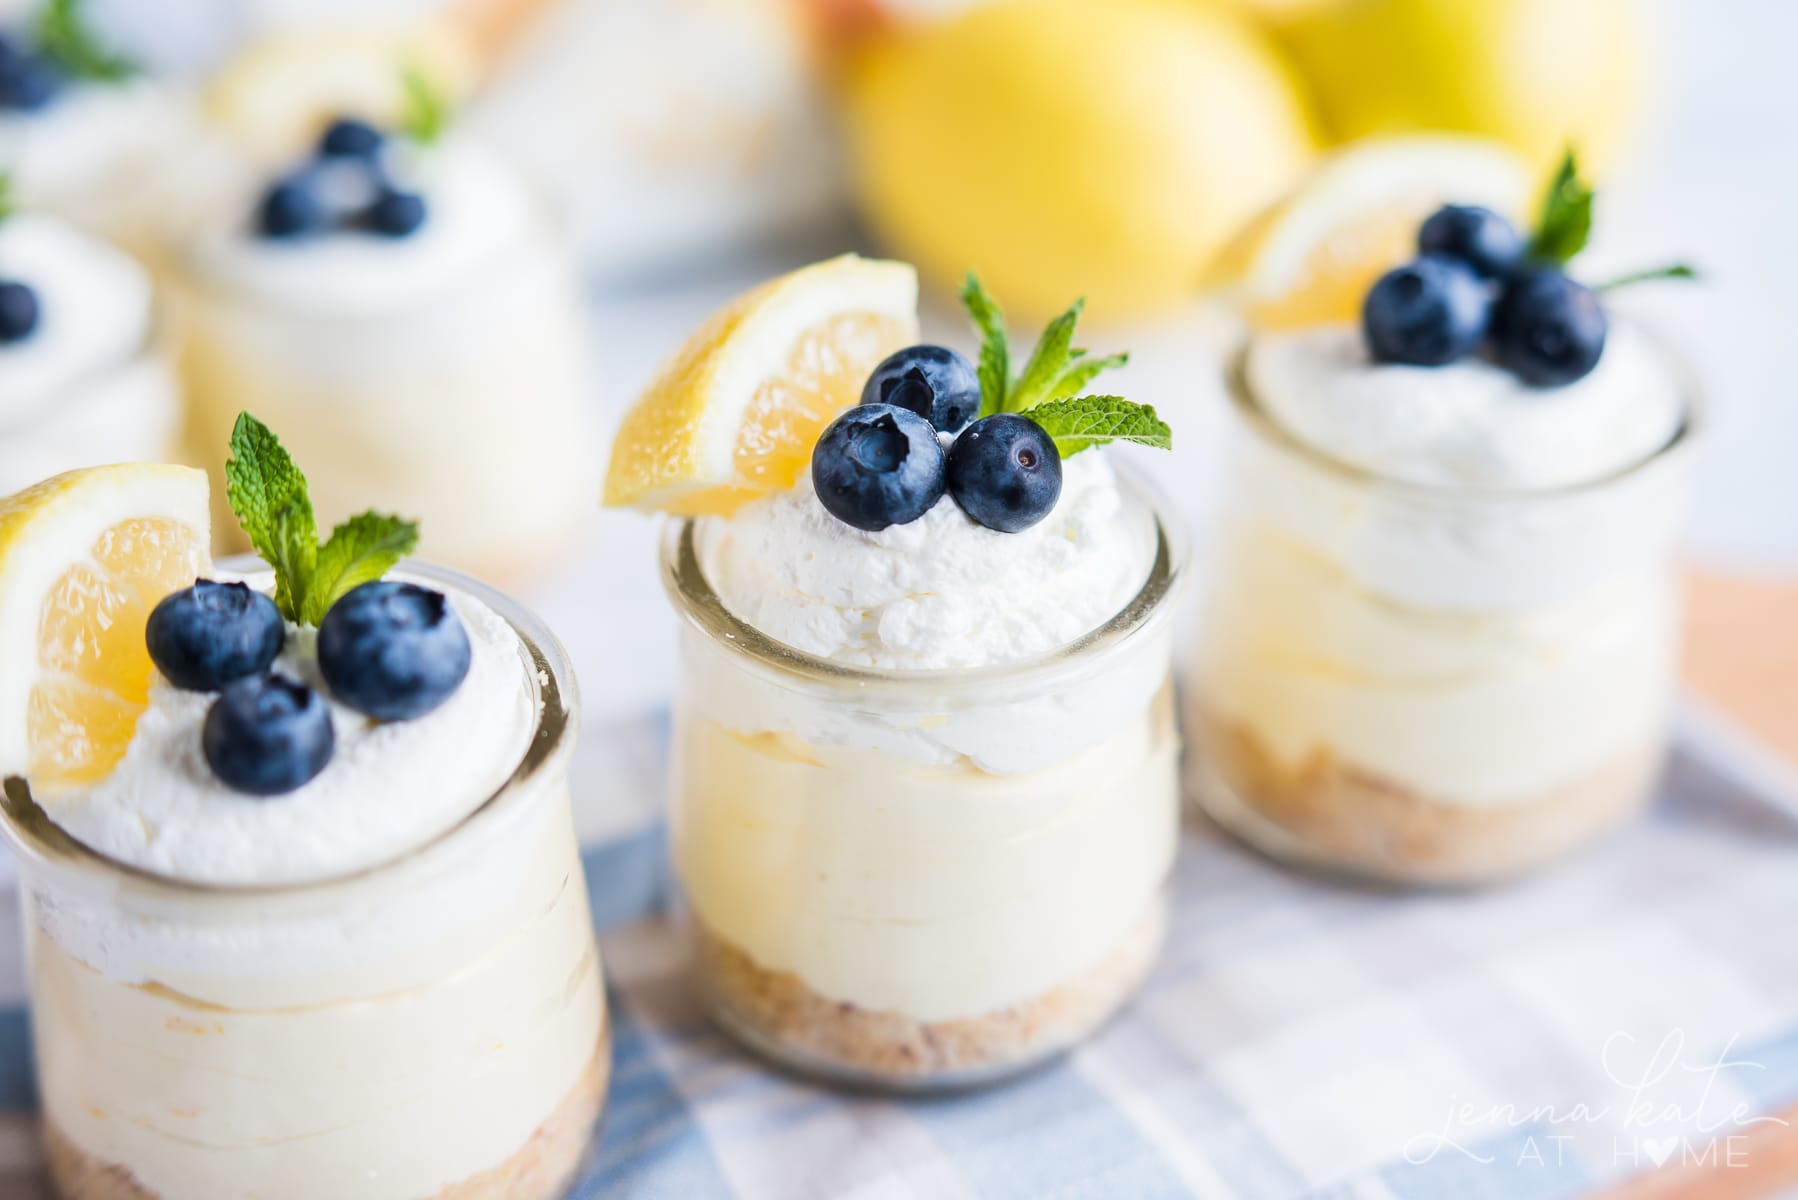 Trio of lemon mousse cheesecakes made with lemon curd